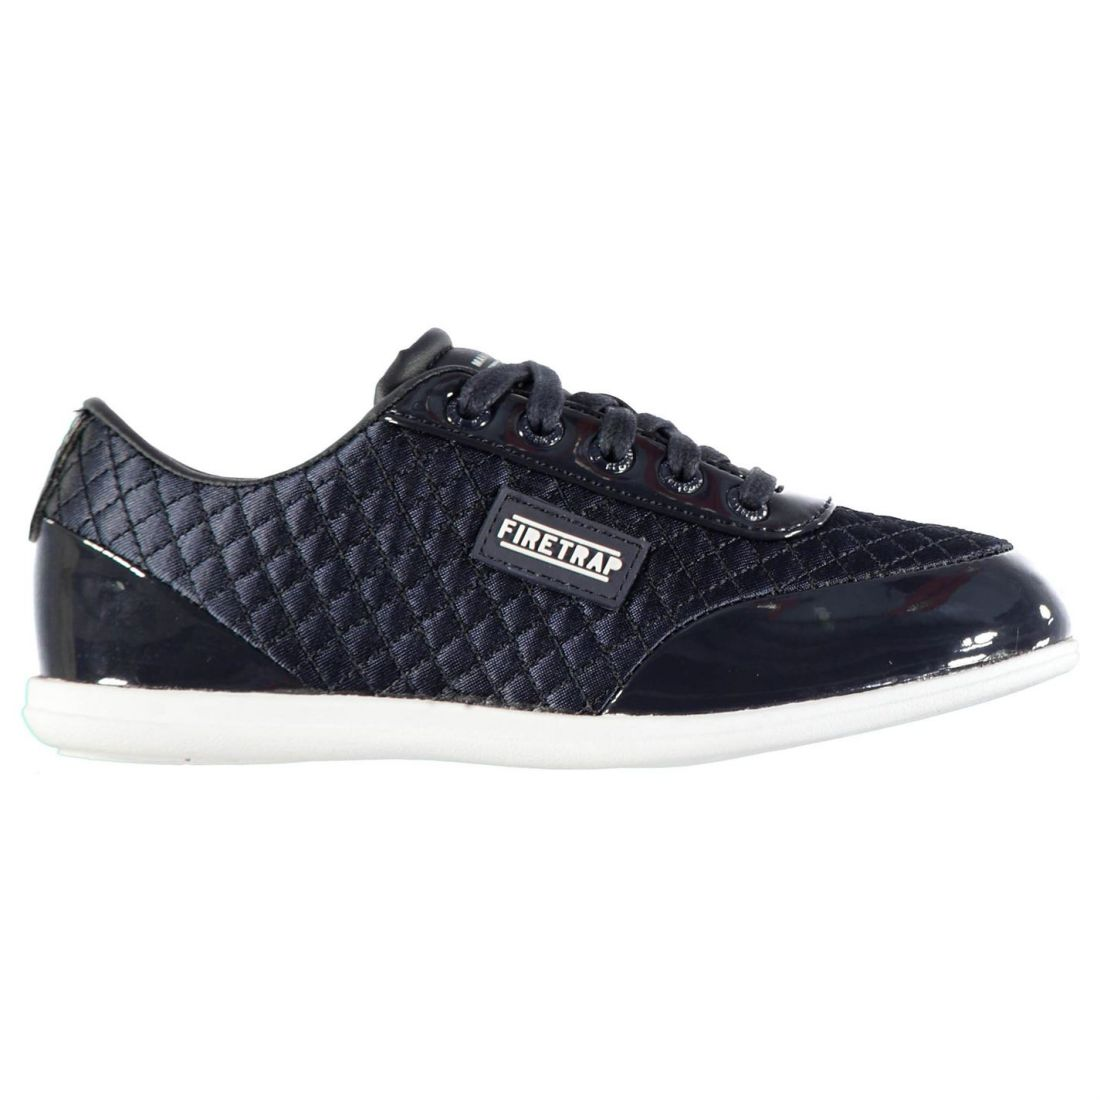 Firetrap Childrens Childs Dr Domello Fashion Sneakers Trainers Lo Lace Up Shoes